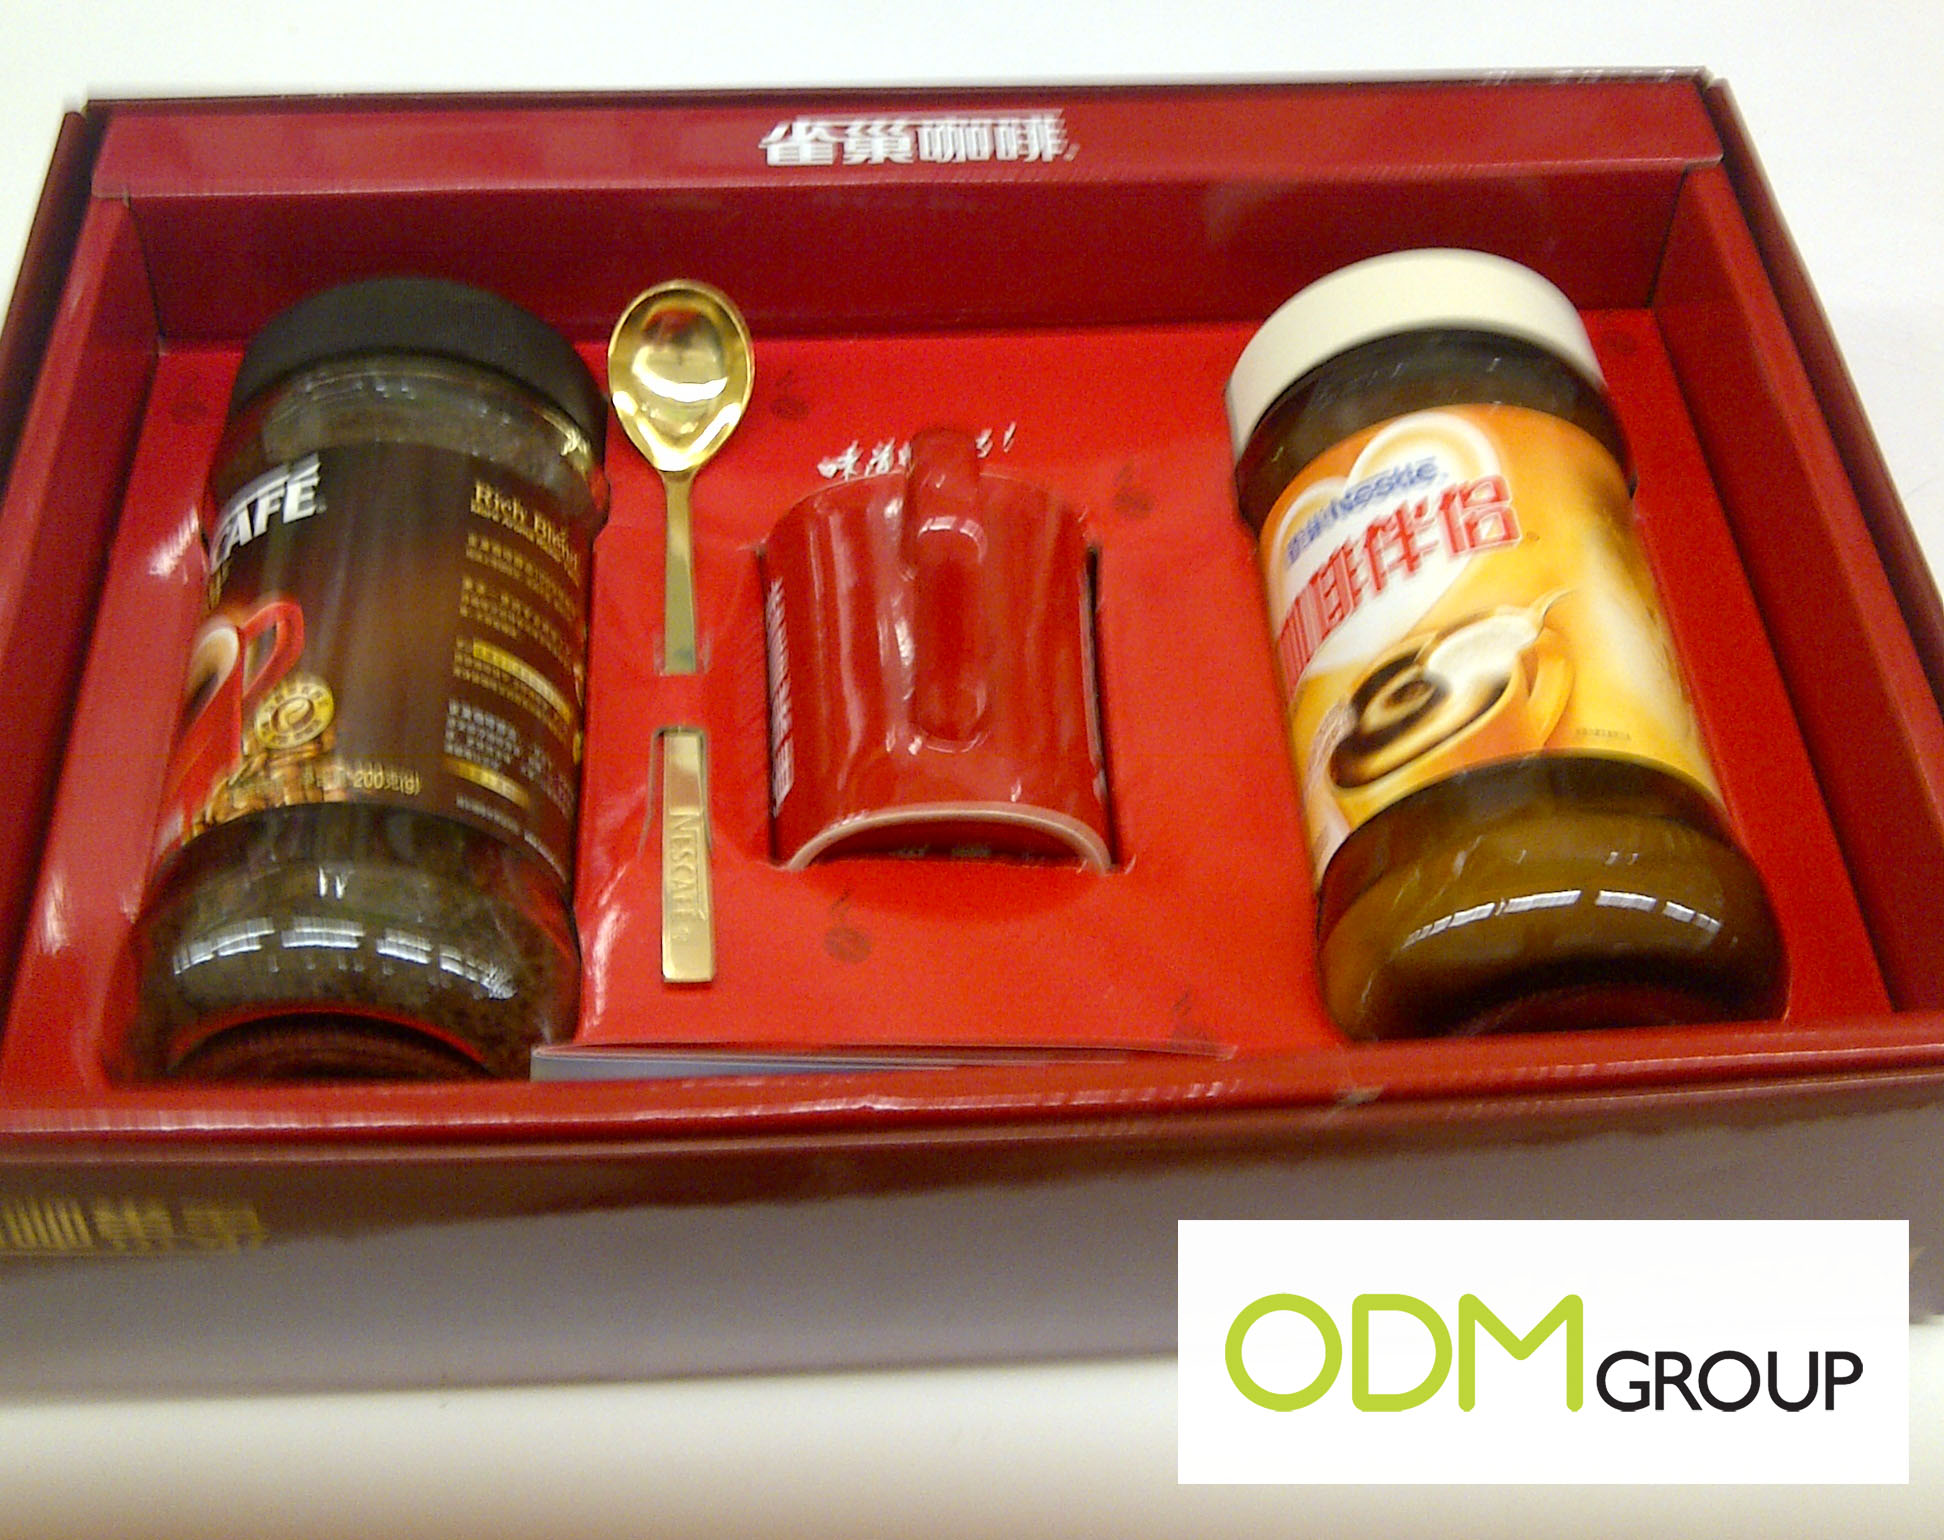 Nescafe On Pack Coffee Mug Promo The Odm Group